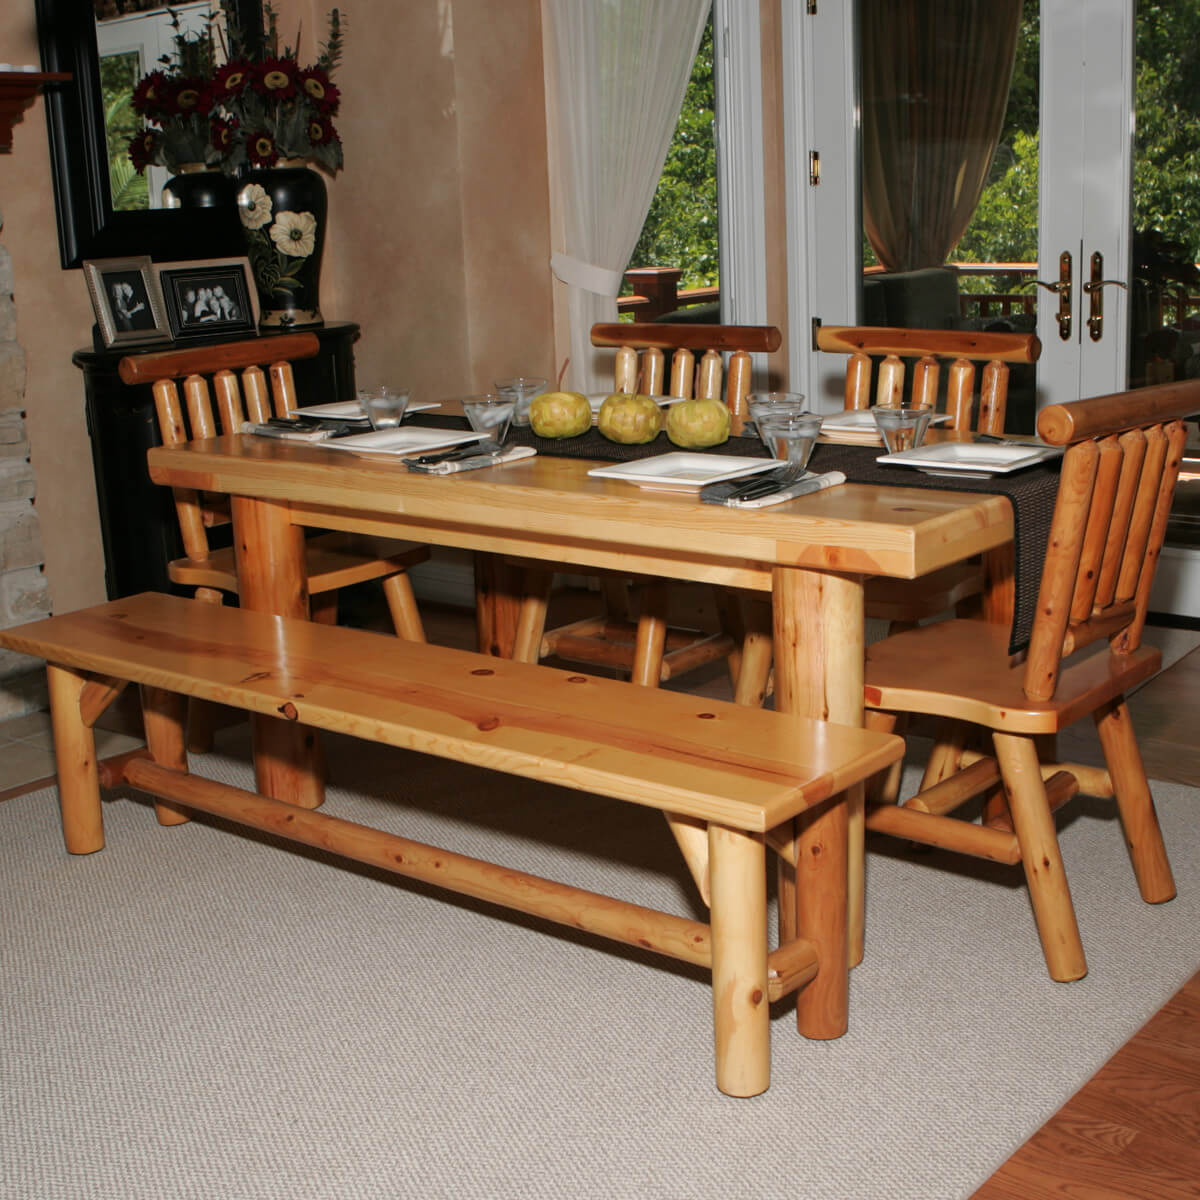 dining room sets bench seating kitchen table bench Here s a dining table set with bench perfect for the log cabin or home Seating